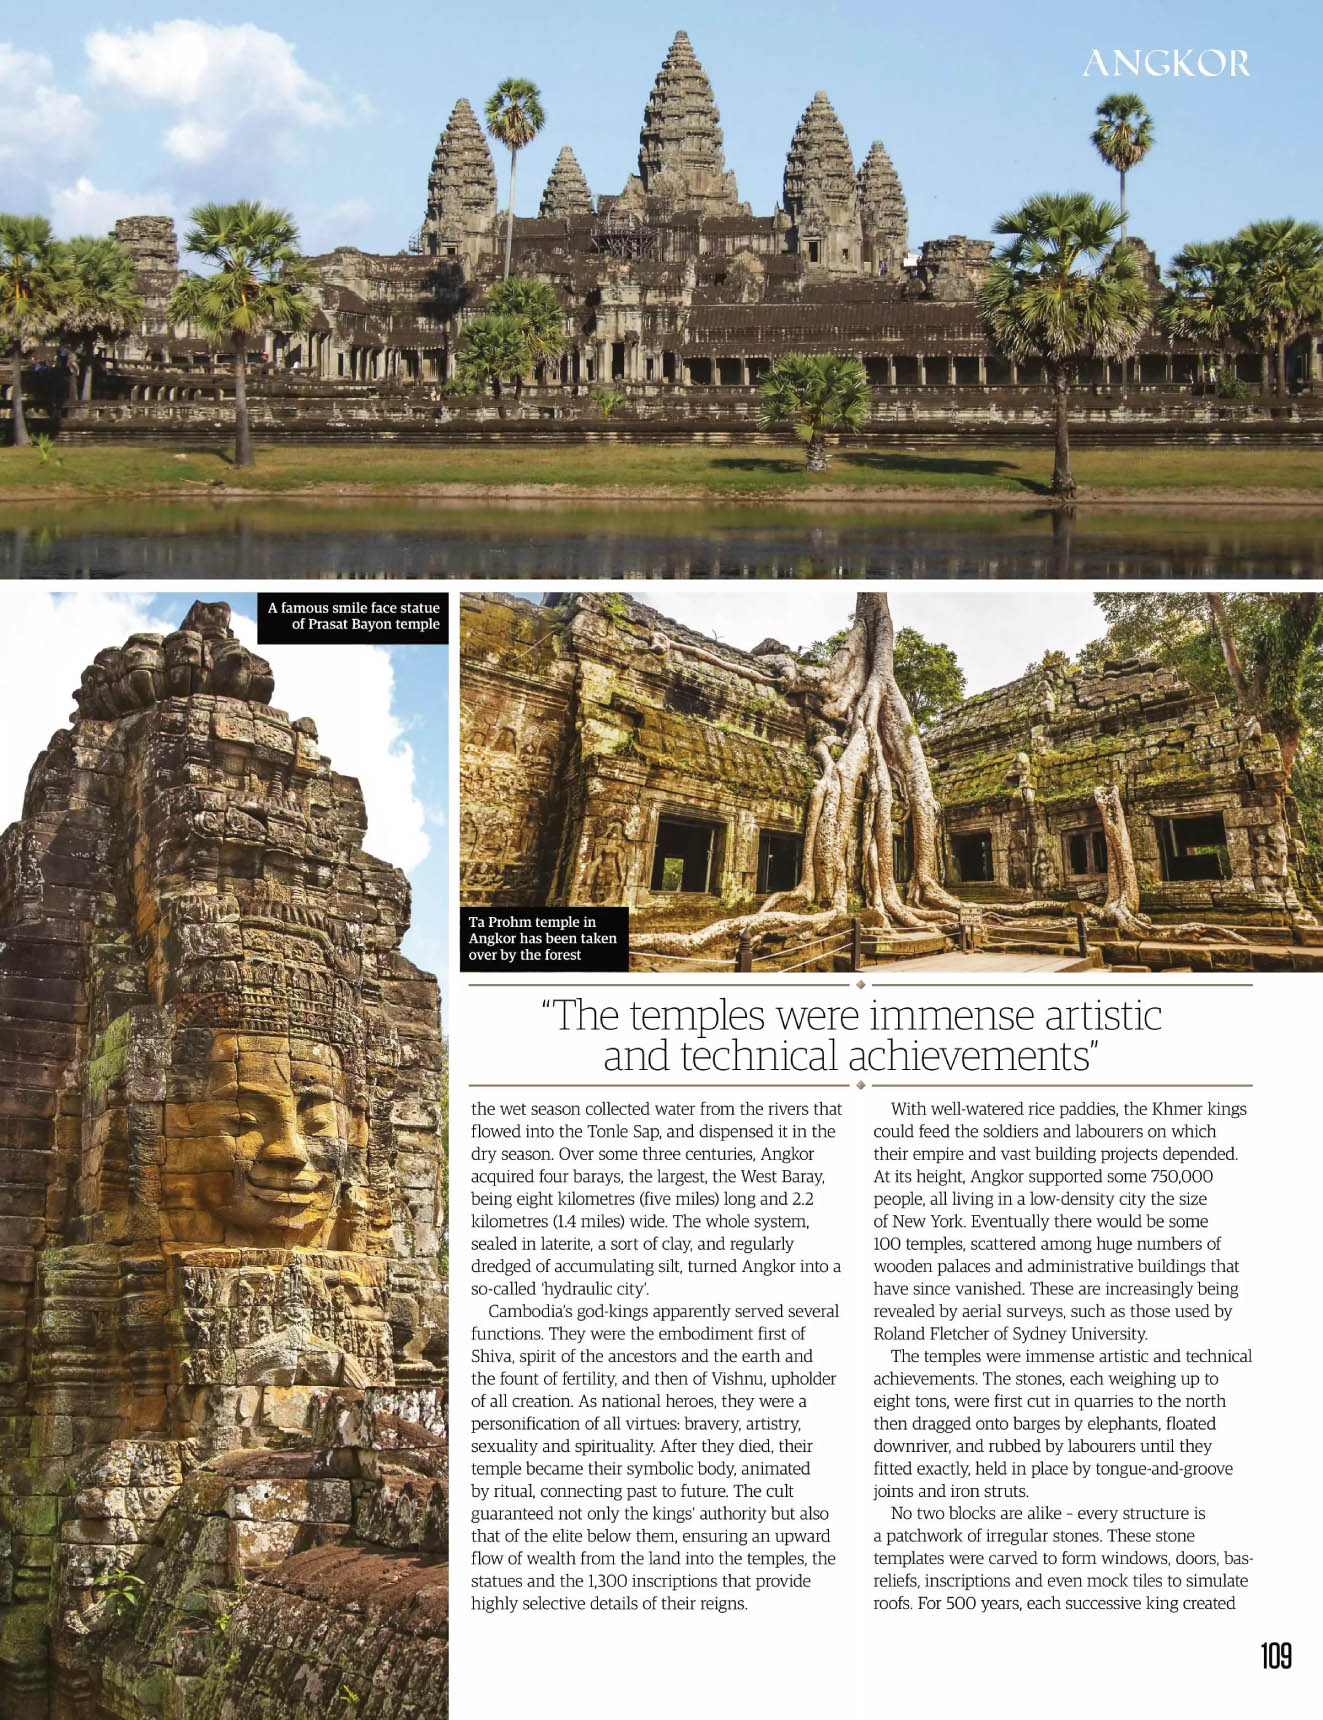 All About History - Lost Cities 3rd Ed 2020 Angkor 03.jpg